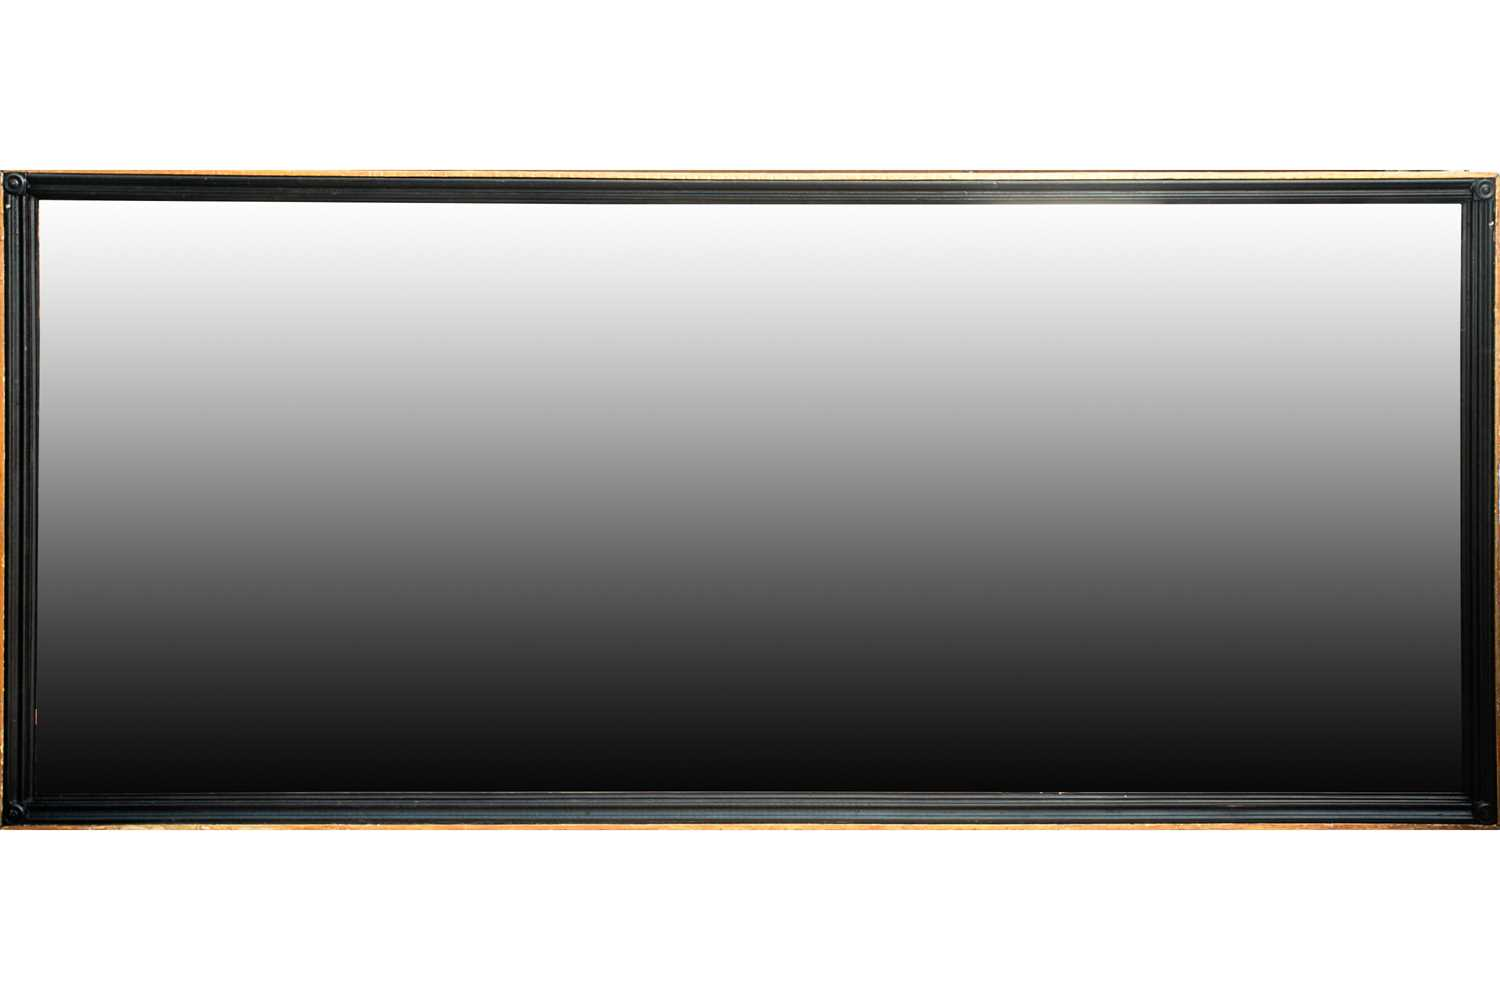 A very large 20th century rectangular ebonized and parcel gilt pier-glass/ wall mirror. With moulded